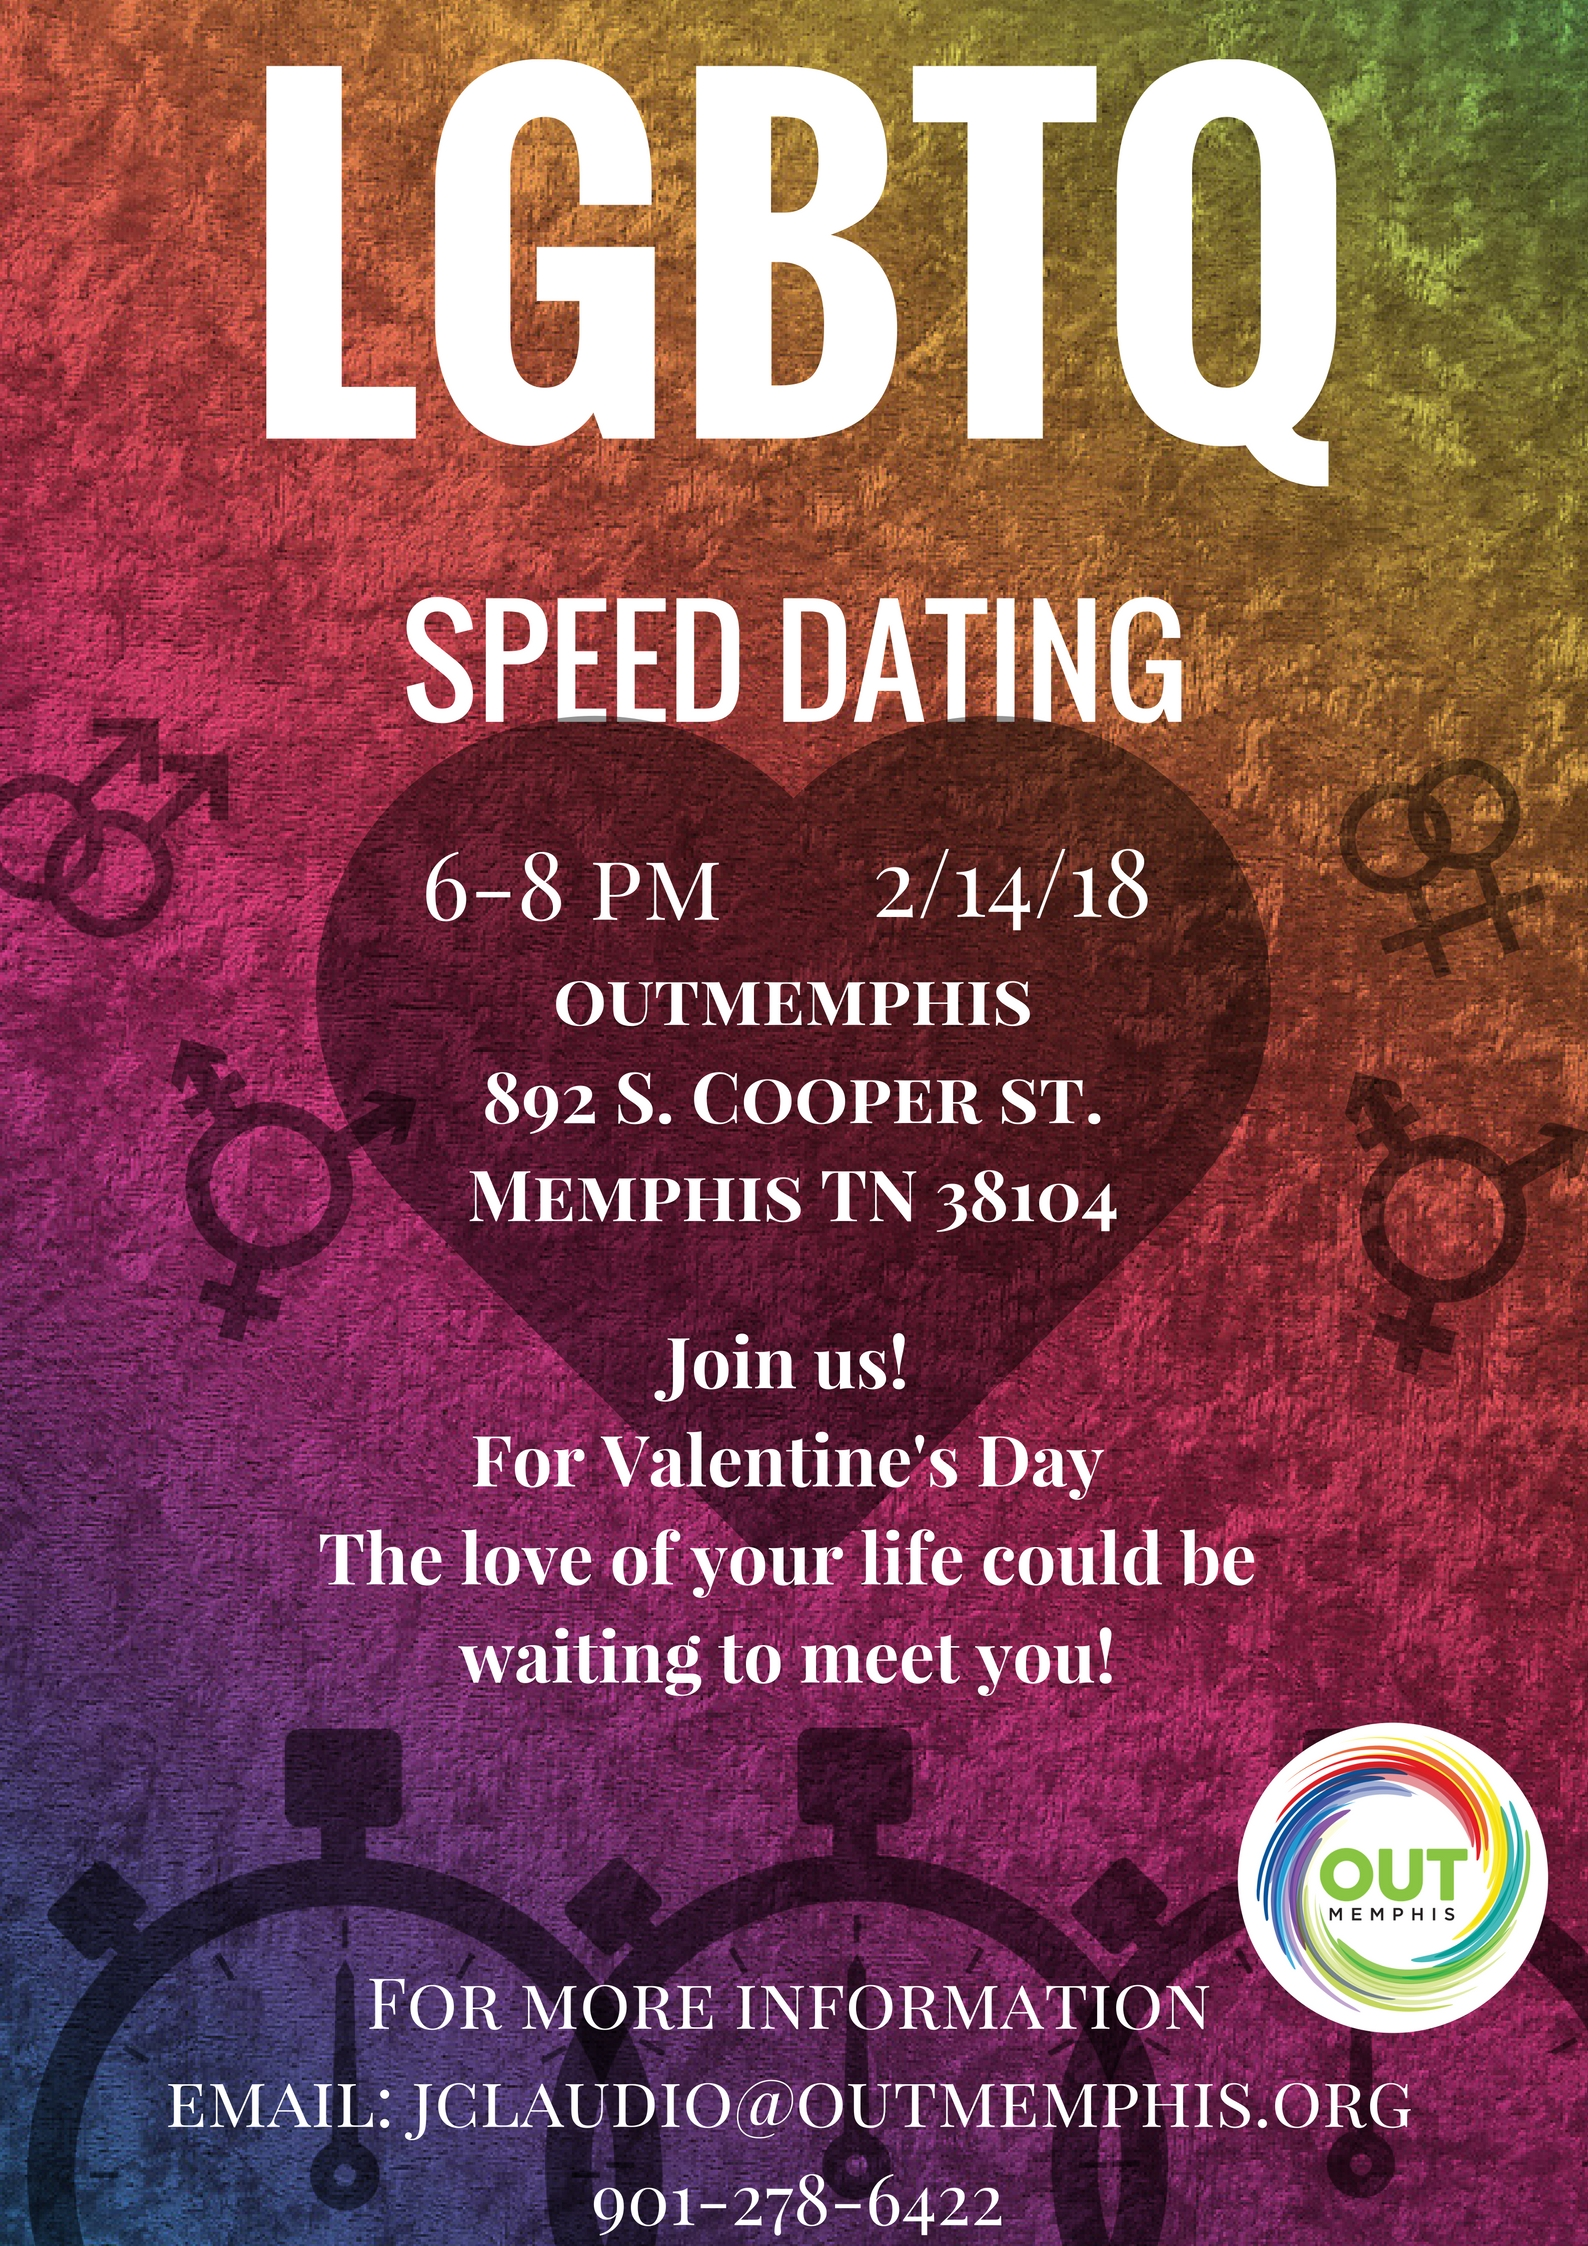 Lgbtq speed dating houston